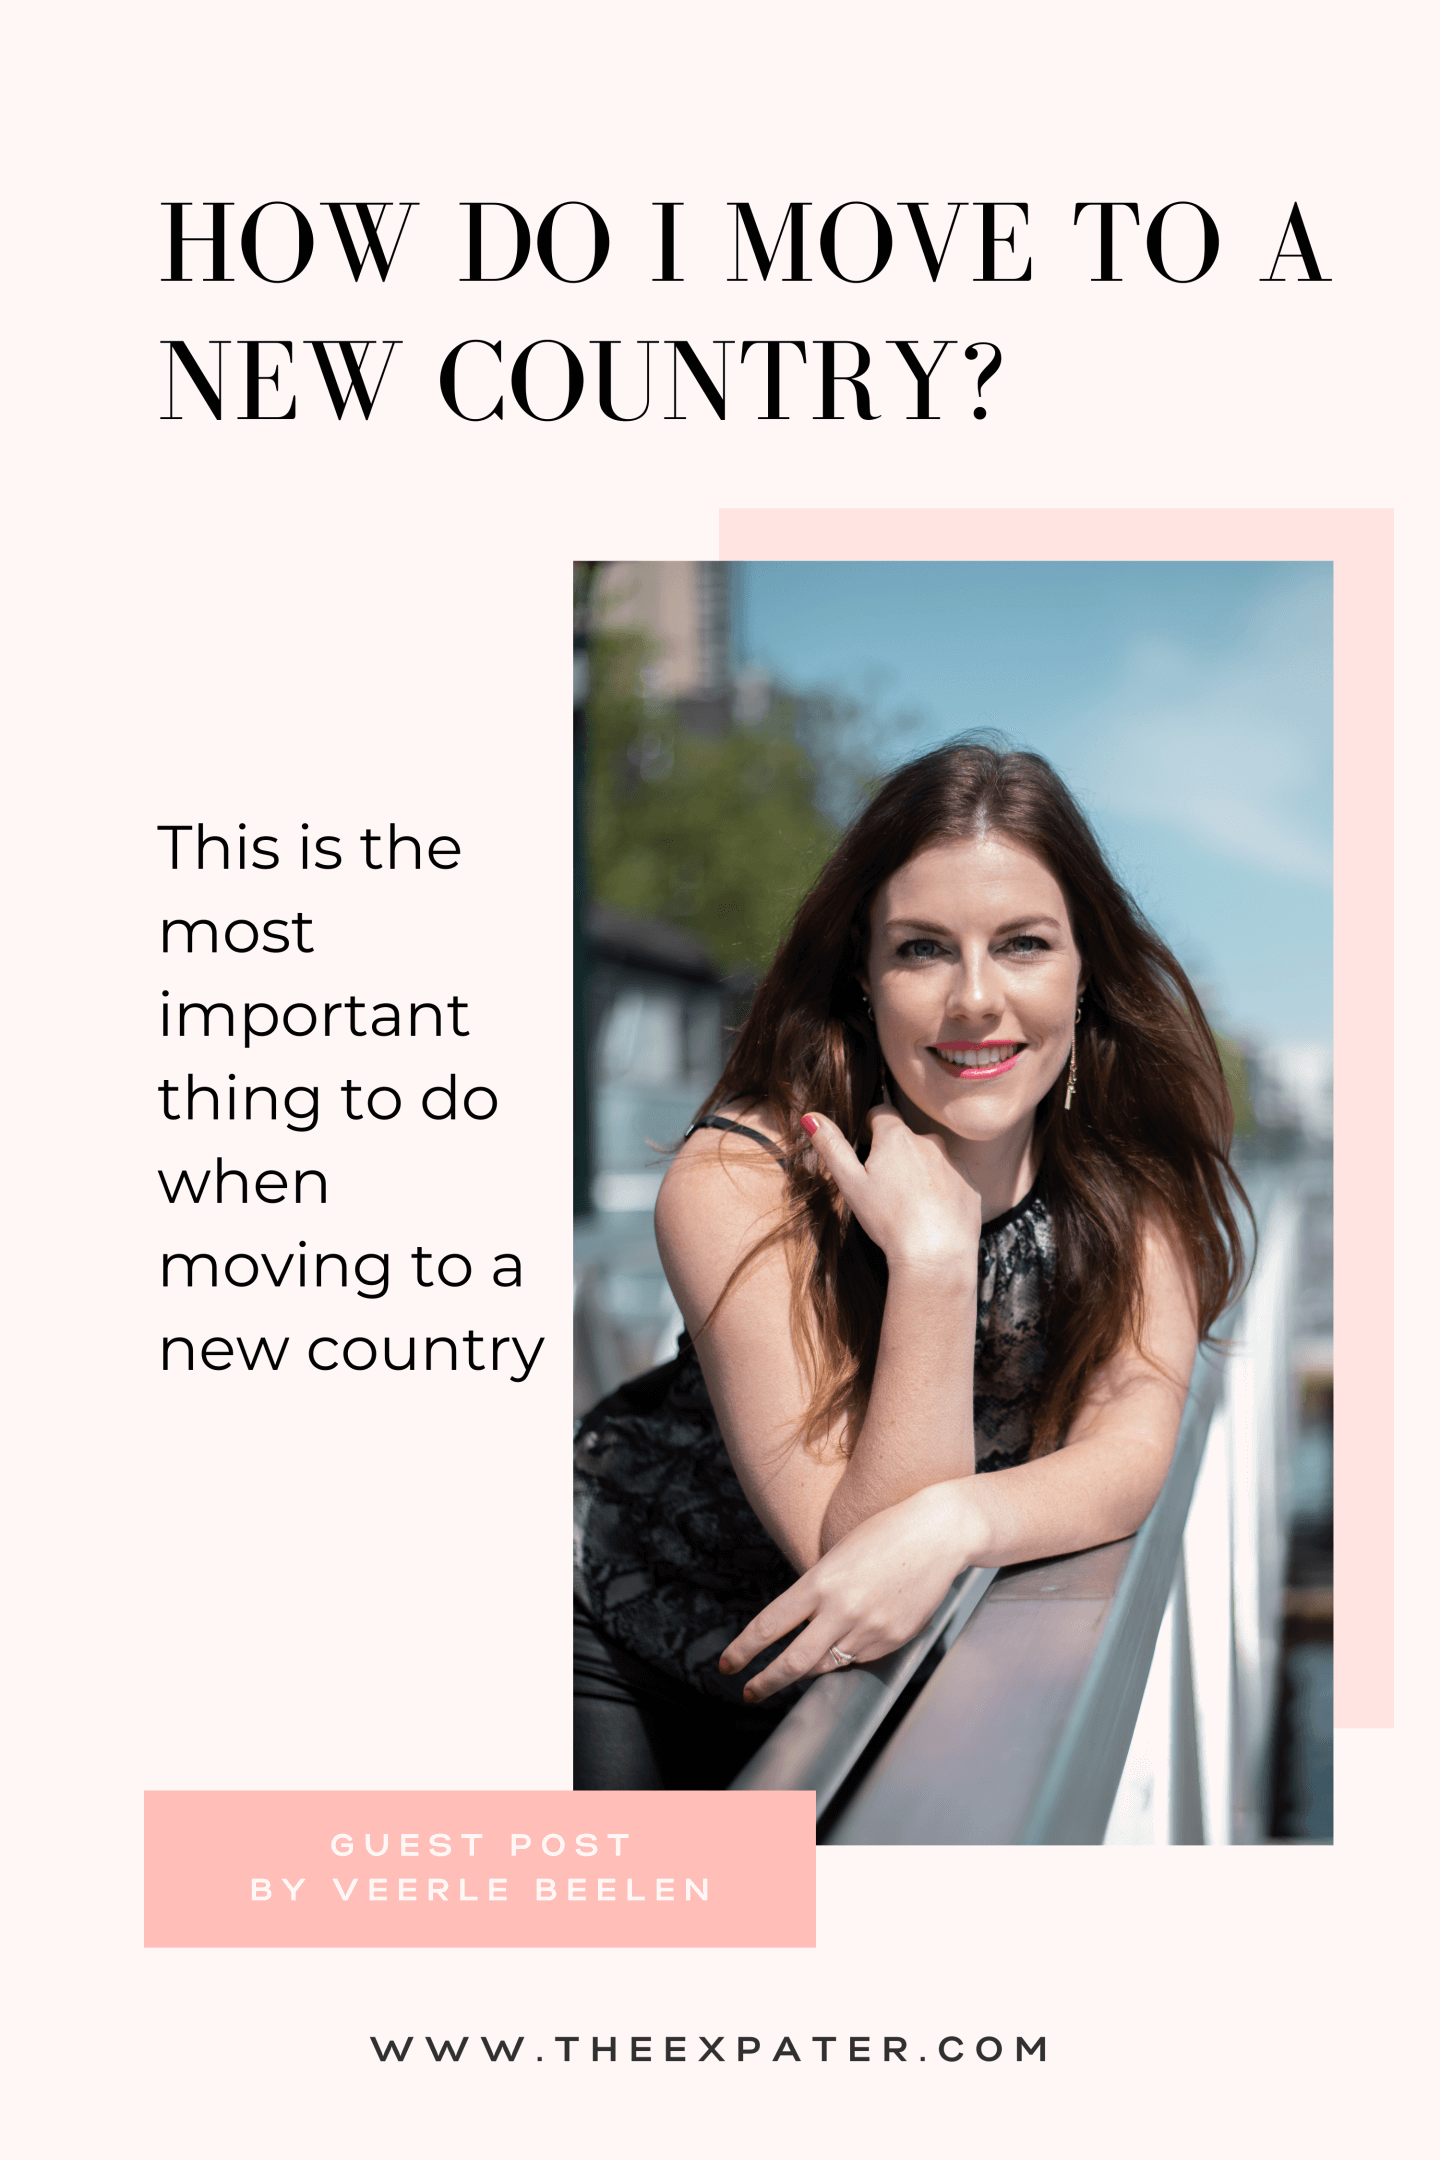 How do I move to a new country?